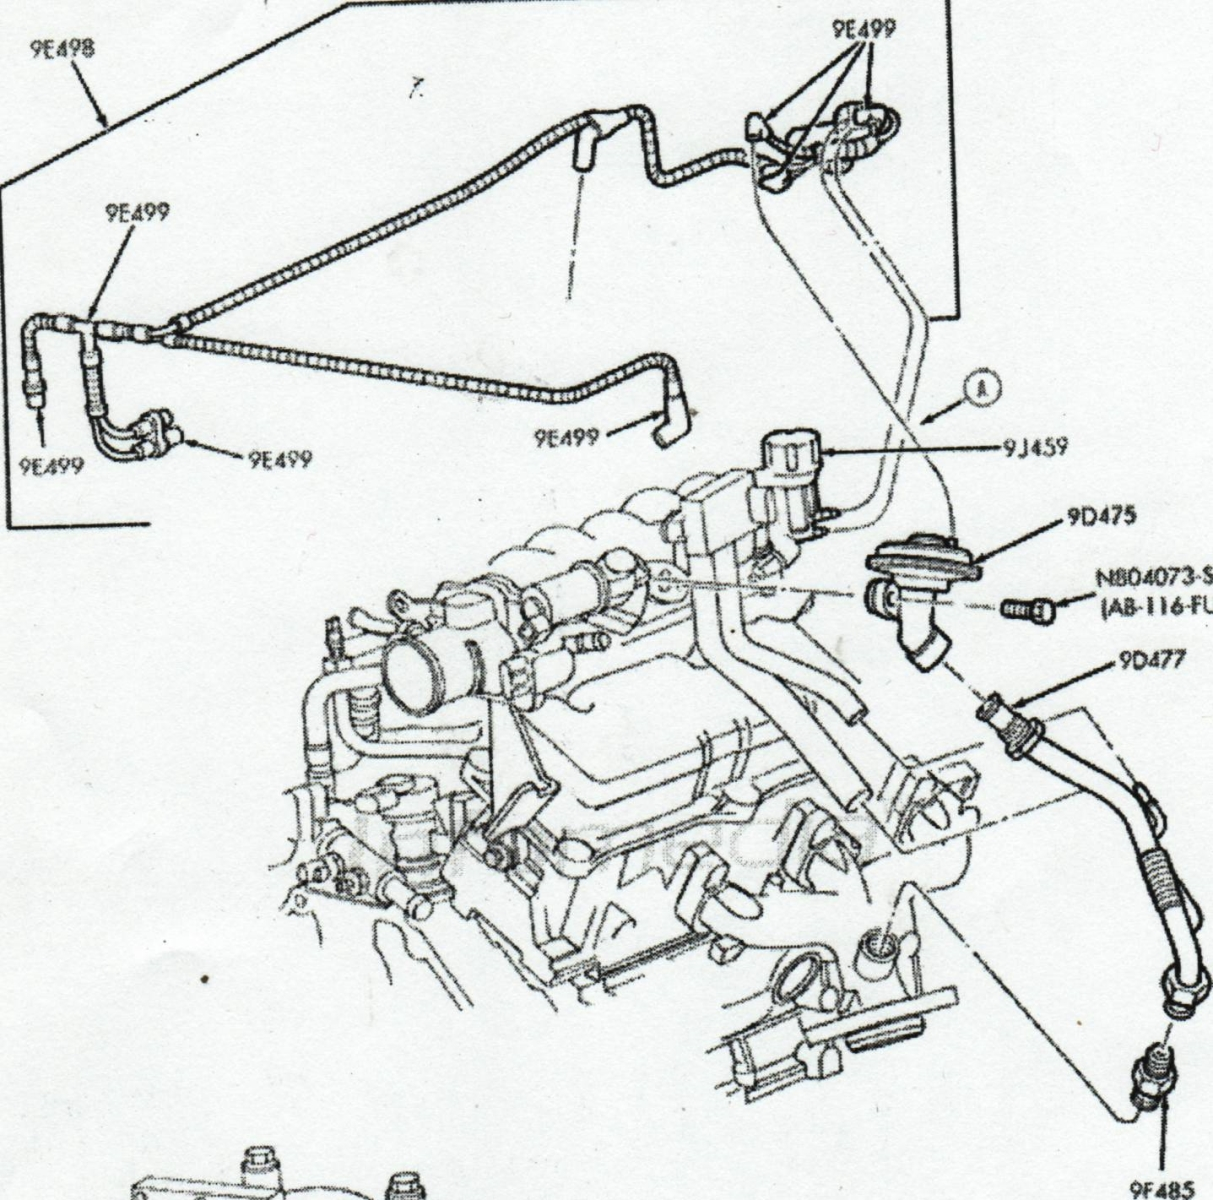 2002 jeep grand cherokee vacuum diagram